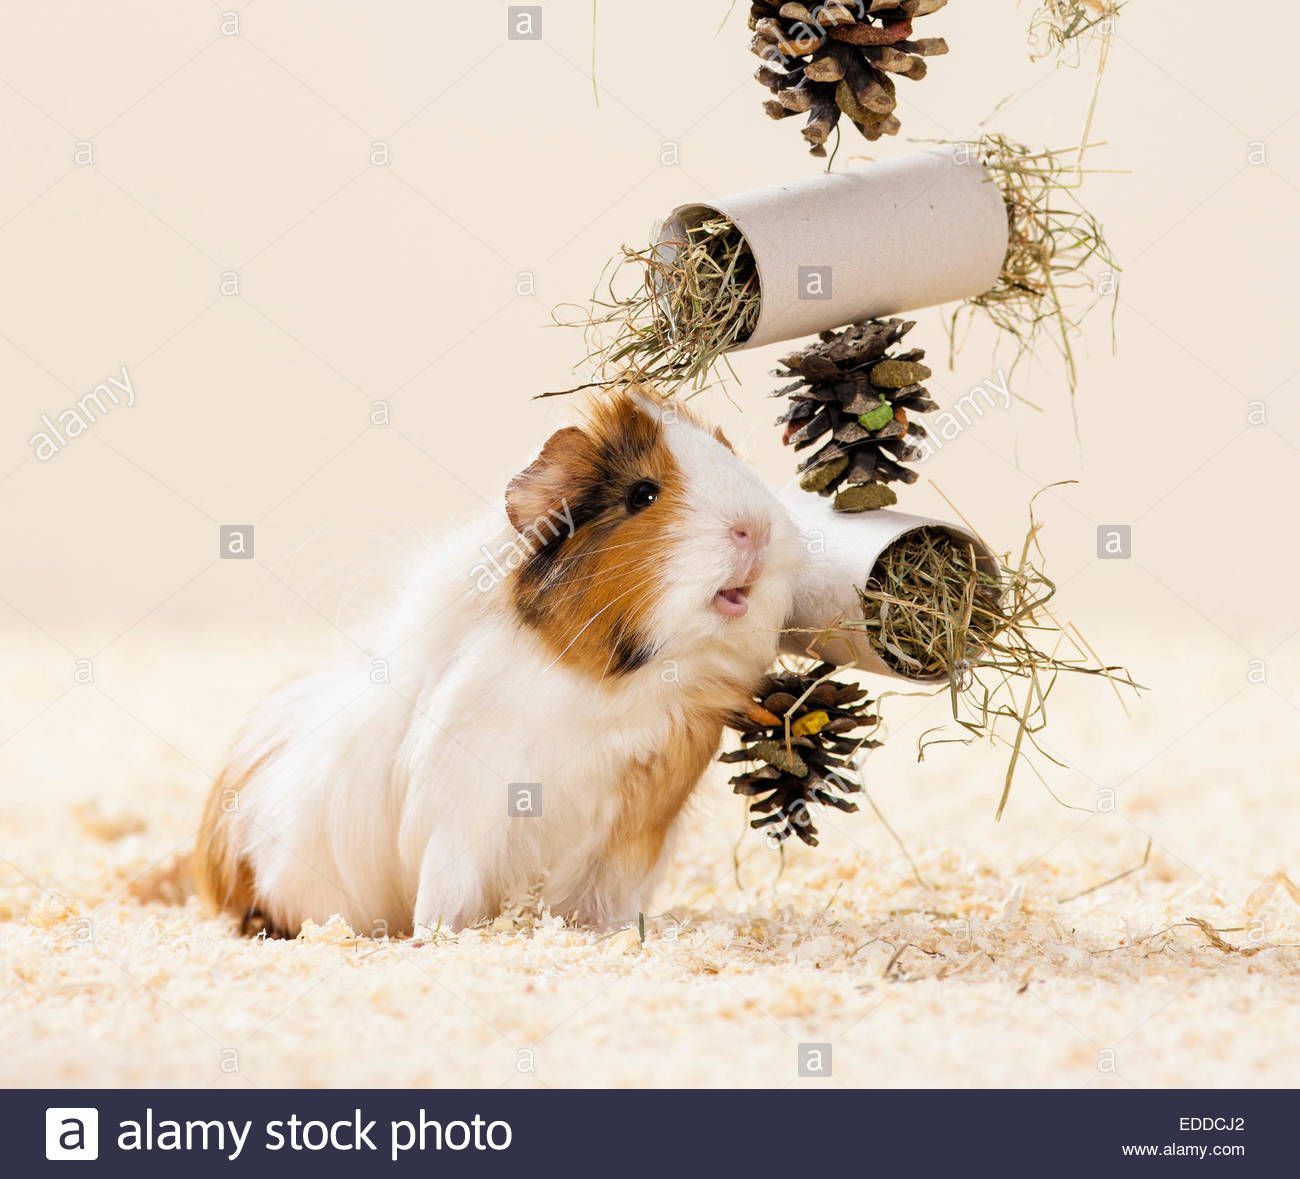 Pin On Guinea Pig Toys